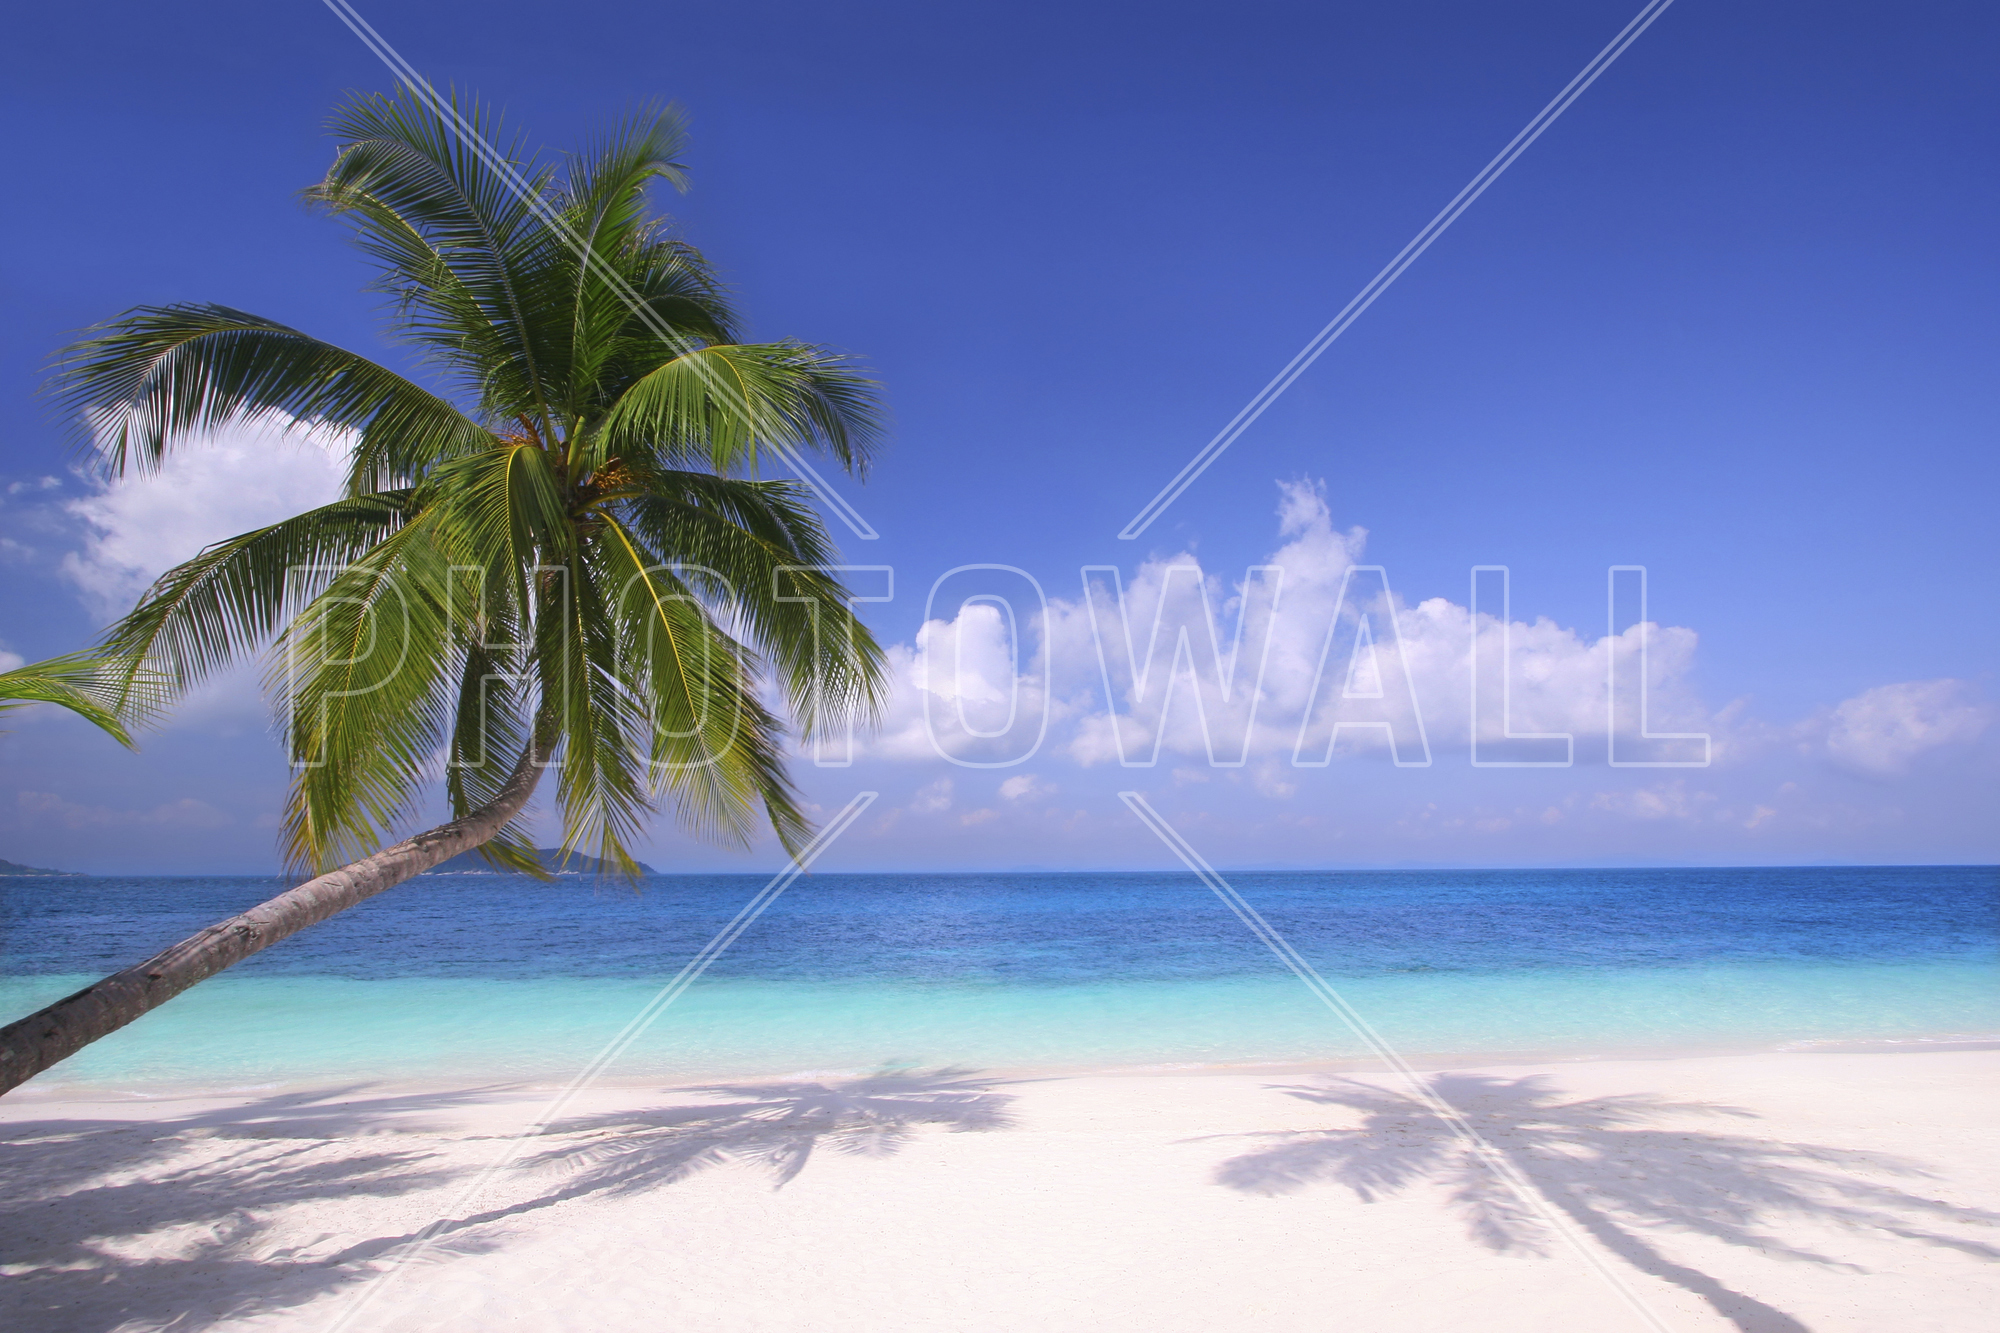 Island Paradise - Wallpaper - Coconut Tree At Beach Png , HD Wallpaper & Backgrounds